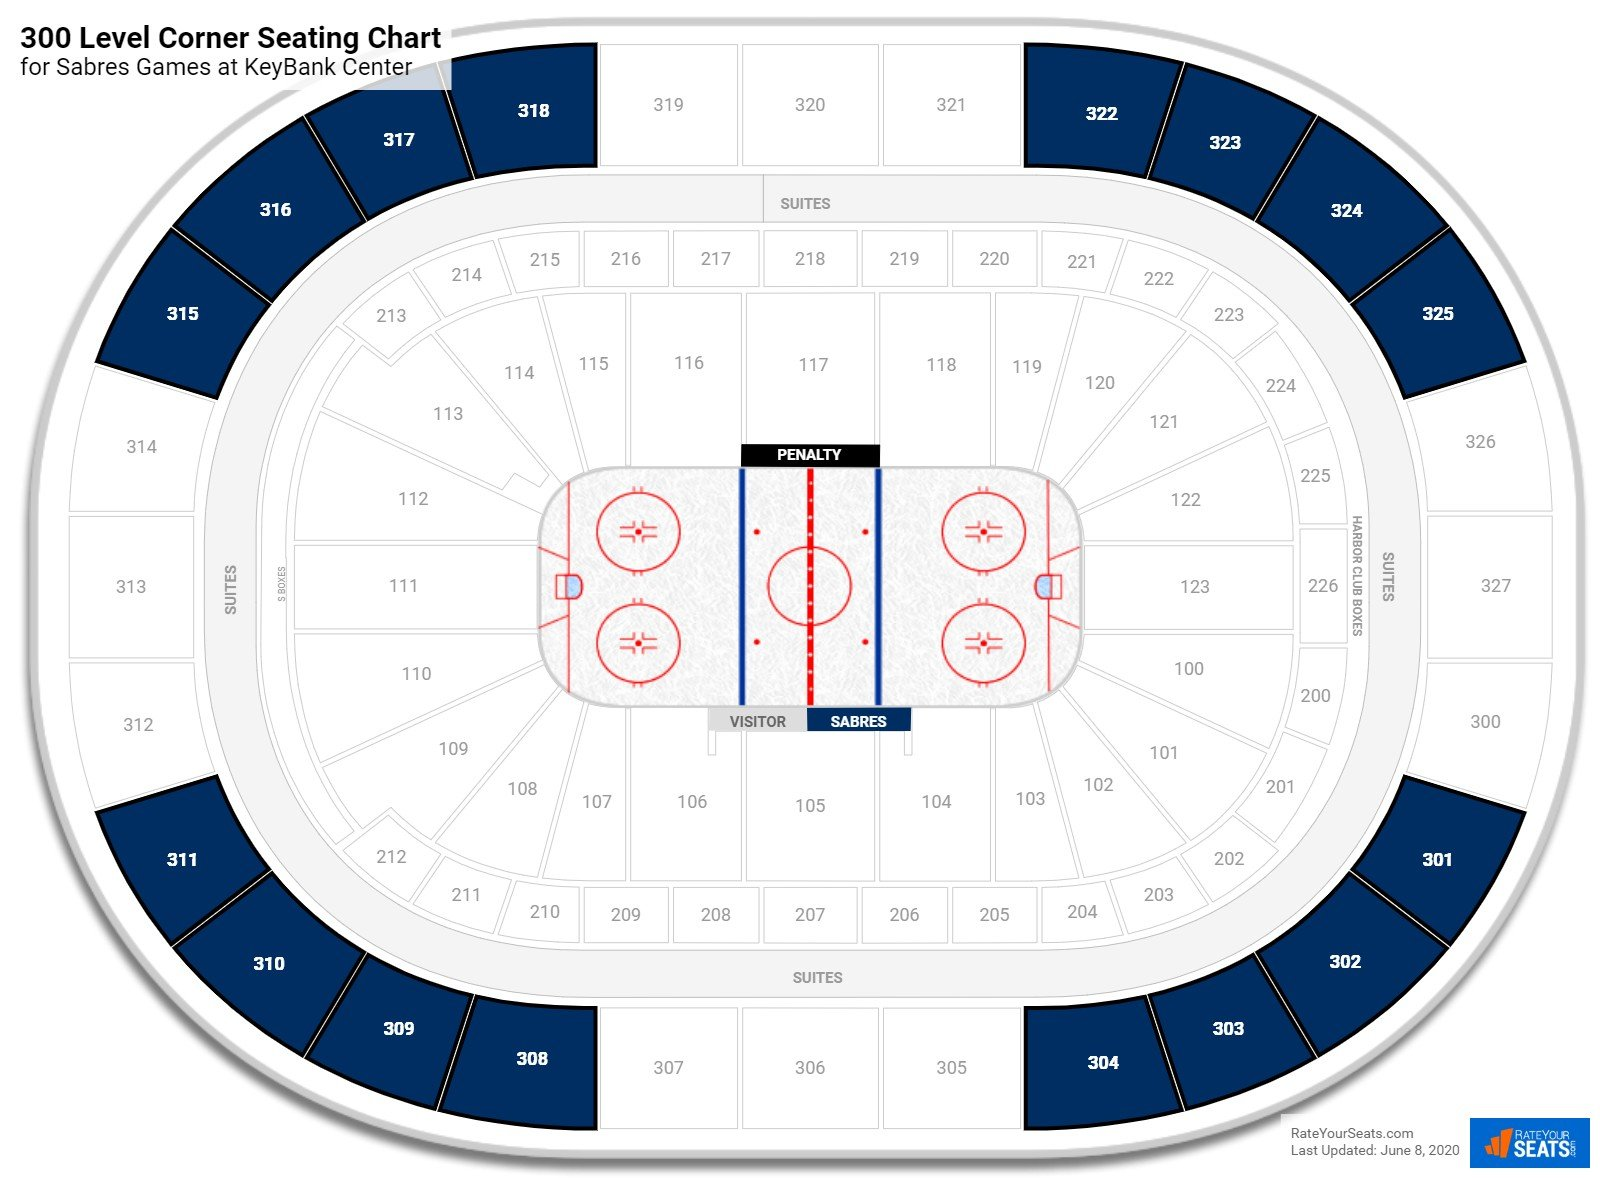 KeyBank Center 300 Level Corner seating chart